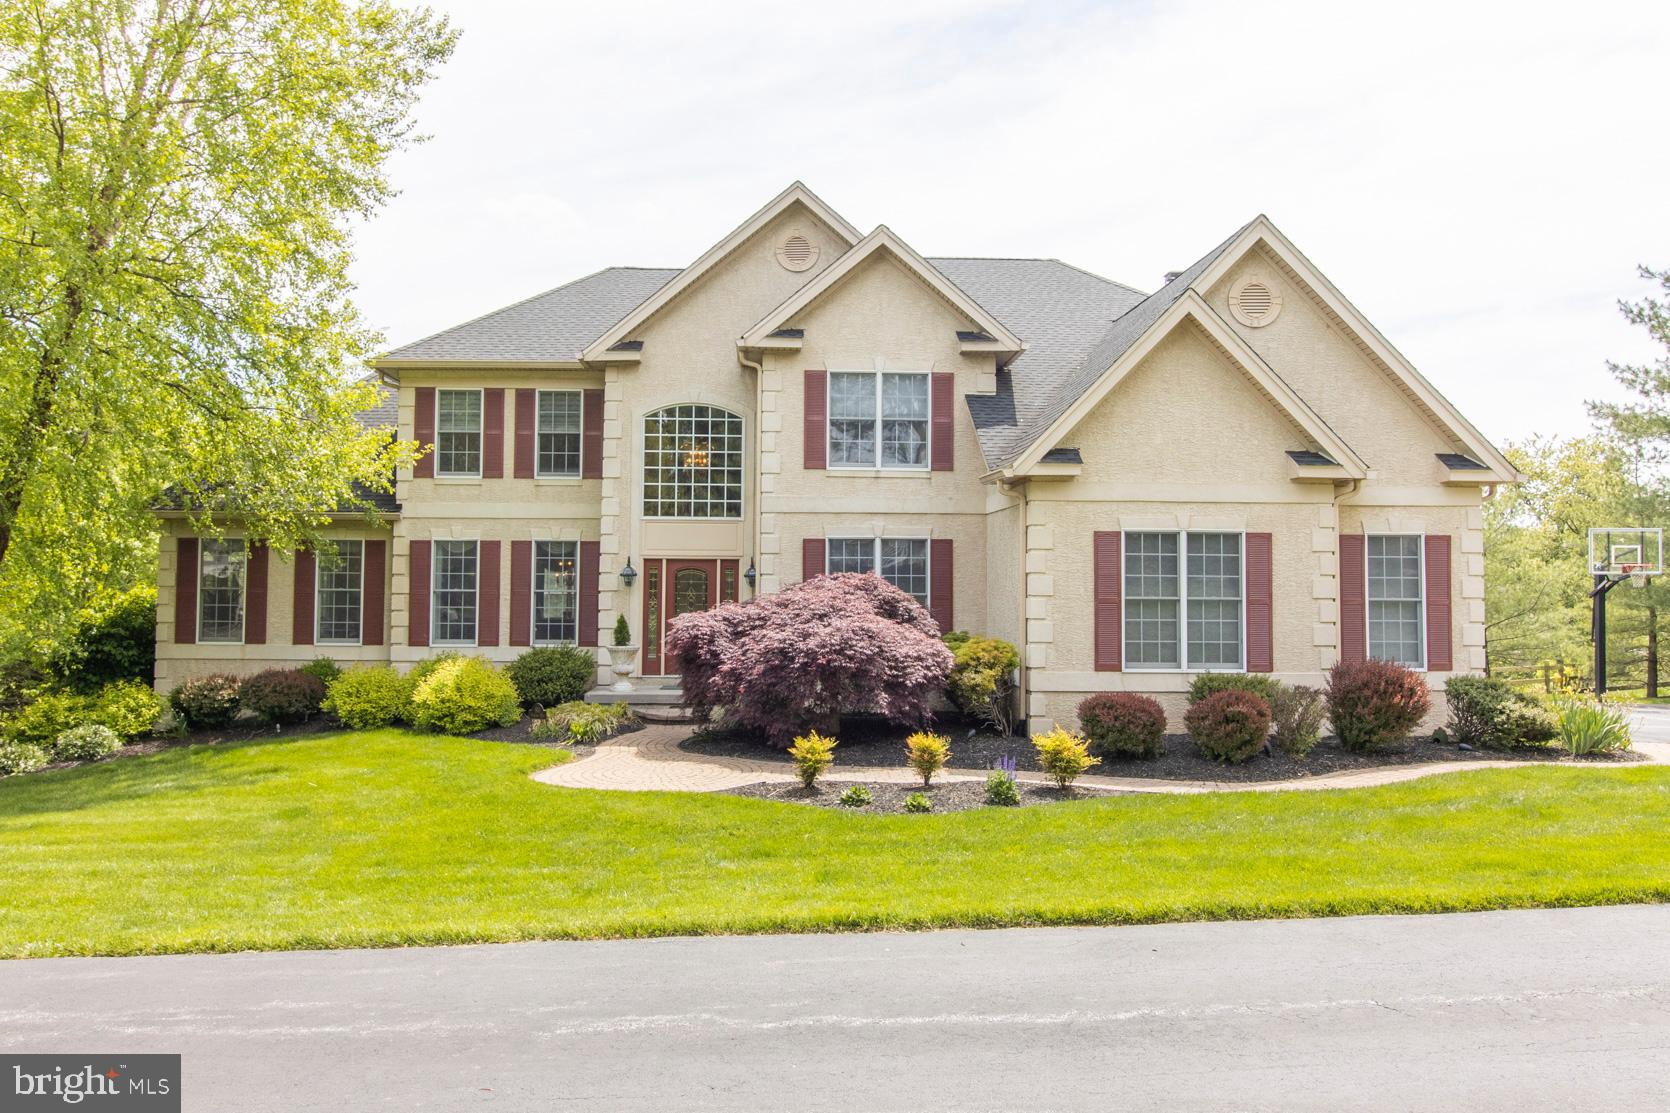 Terrific Executive Home in sought after Westtown Chase on a private lane features both an outstanding location and a magnificent view.   Upgrades galore featuring a spacious eat in kitchen w/ maple cabinets, center island, granite countertops, huge pantry and ceramic tile flooring.    Sunken, open family room with stone fireplace (gas) and back staircase, conservatory/game room w/ vaulted ceilings and ceramic tile floor, open two story entrance way, formal living and dining rooms w/crown molding.  Separate laundry room, powder room and office/den with built-ins round out the first floor.   Spacious 2nd floor owners suite includes sitting area, custom bathroom area with soaking tub and custom walk-in closet with  island.   Three additional bedrooms, one with a private bath and walk in closet plus two more bedrooms that share a jack and jill bathroom.  Exterior upgrades include an oversized 3 car garage and a huge, approximately 14 x 42 foot trex deck offers a panoramic view of the area.    Potential galore in the full house size unfinished, walk-out basement with 9 foot ceilings to include featuring an extra window package for natural light. Roughed in plumbing in place.  Custom stone pavers highlight a walk-out walkway to rear yard and deck.   Three (3) zoned heating/cooling plus upgraded security system with ring doorbell.  A stucco remediation has been completed. Paperwork in documents.